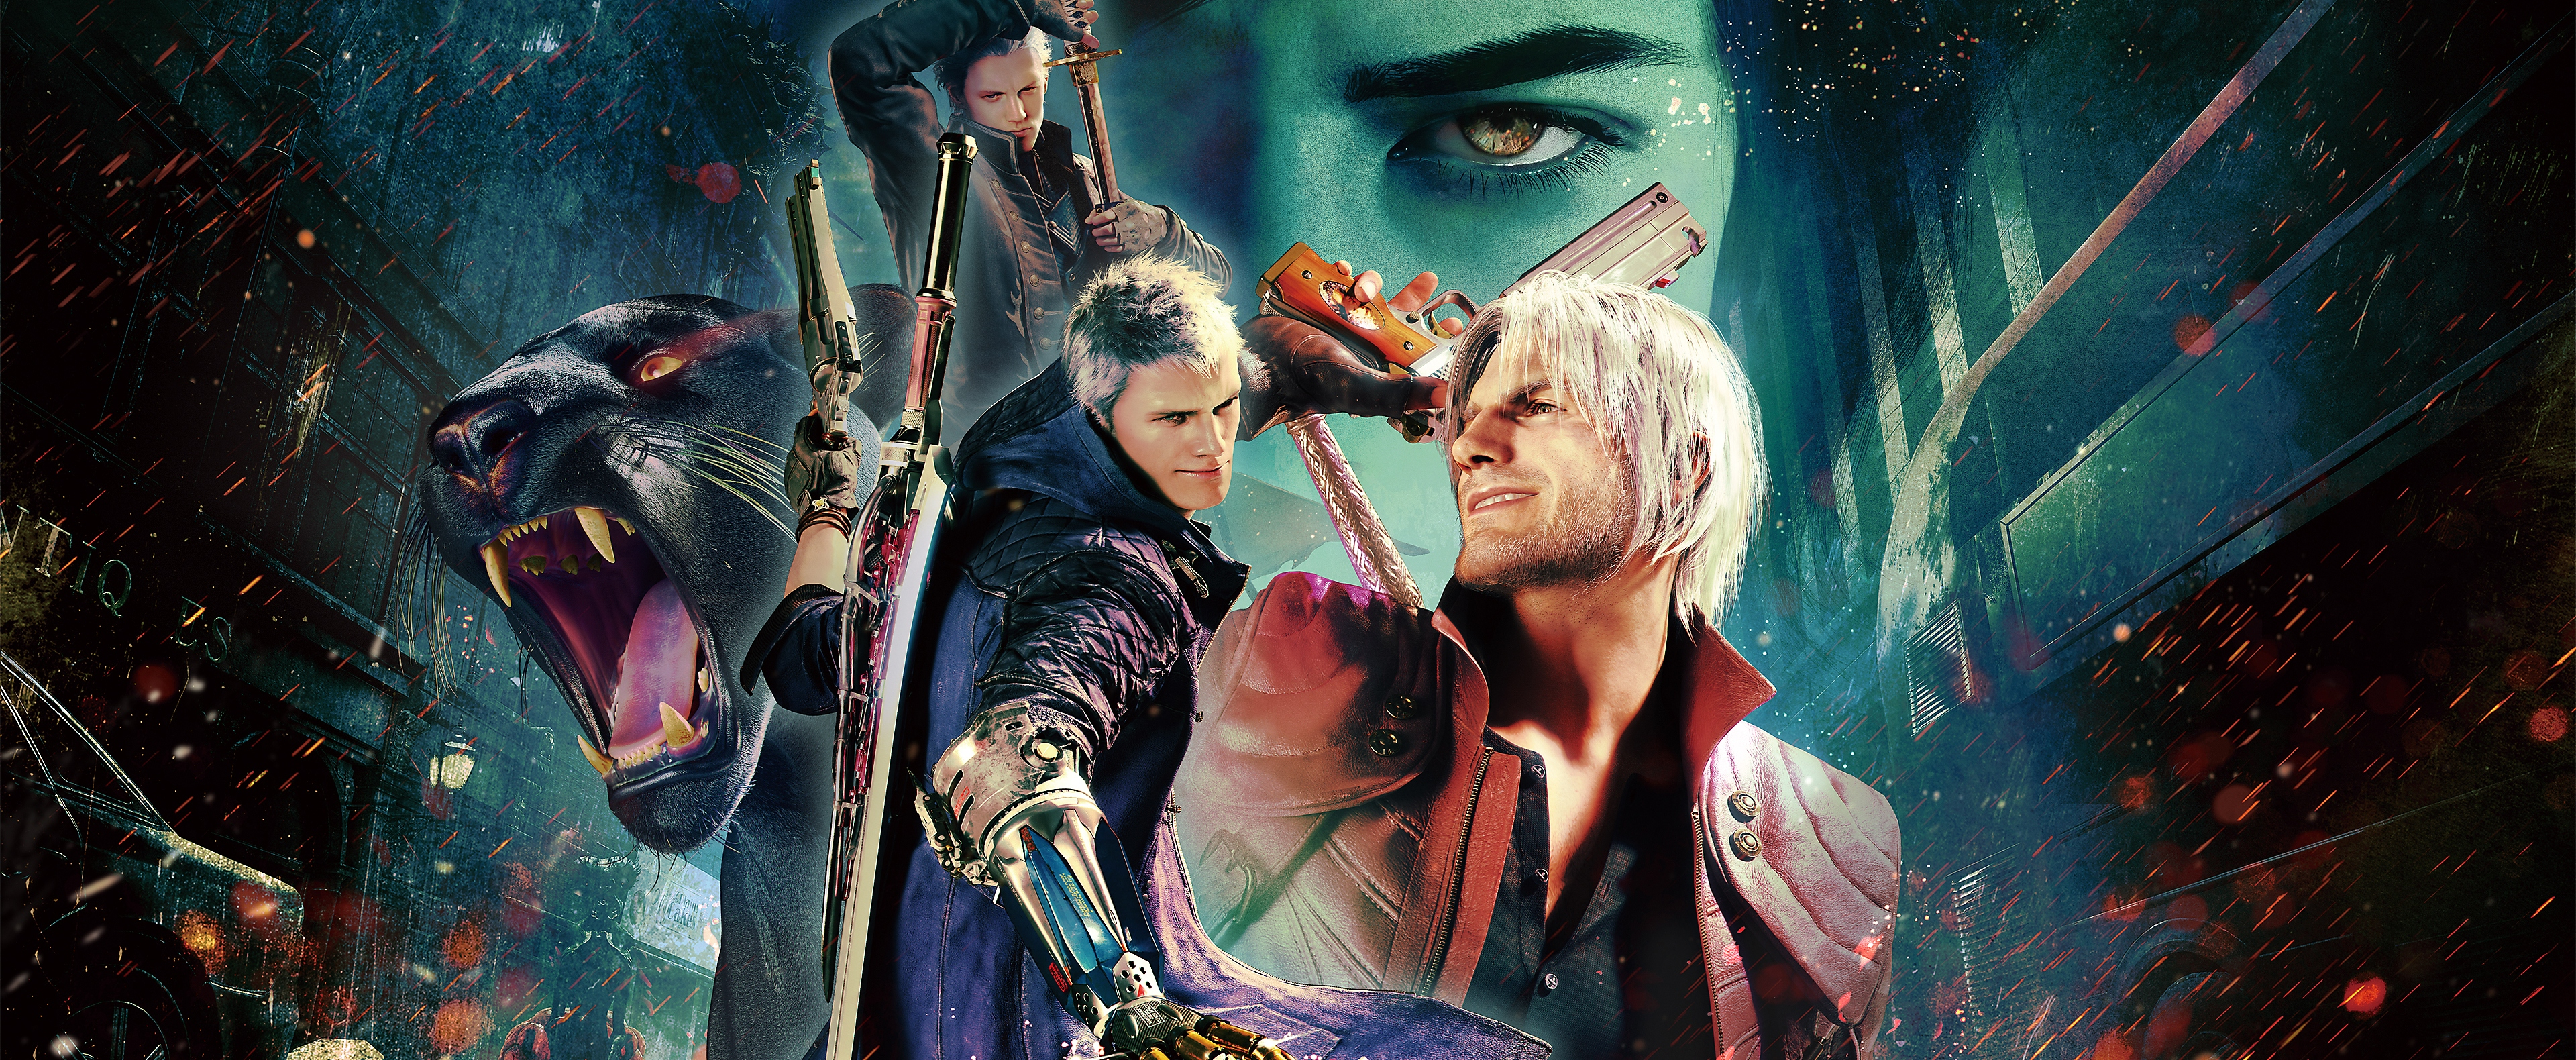 Devil May Cry 5: Special Edition - Tecla de retroceso Art